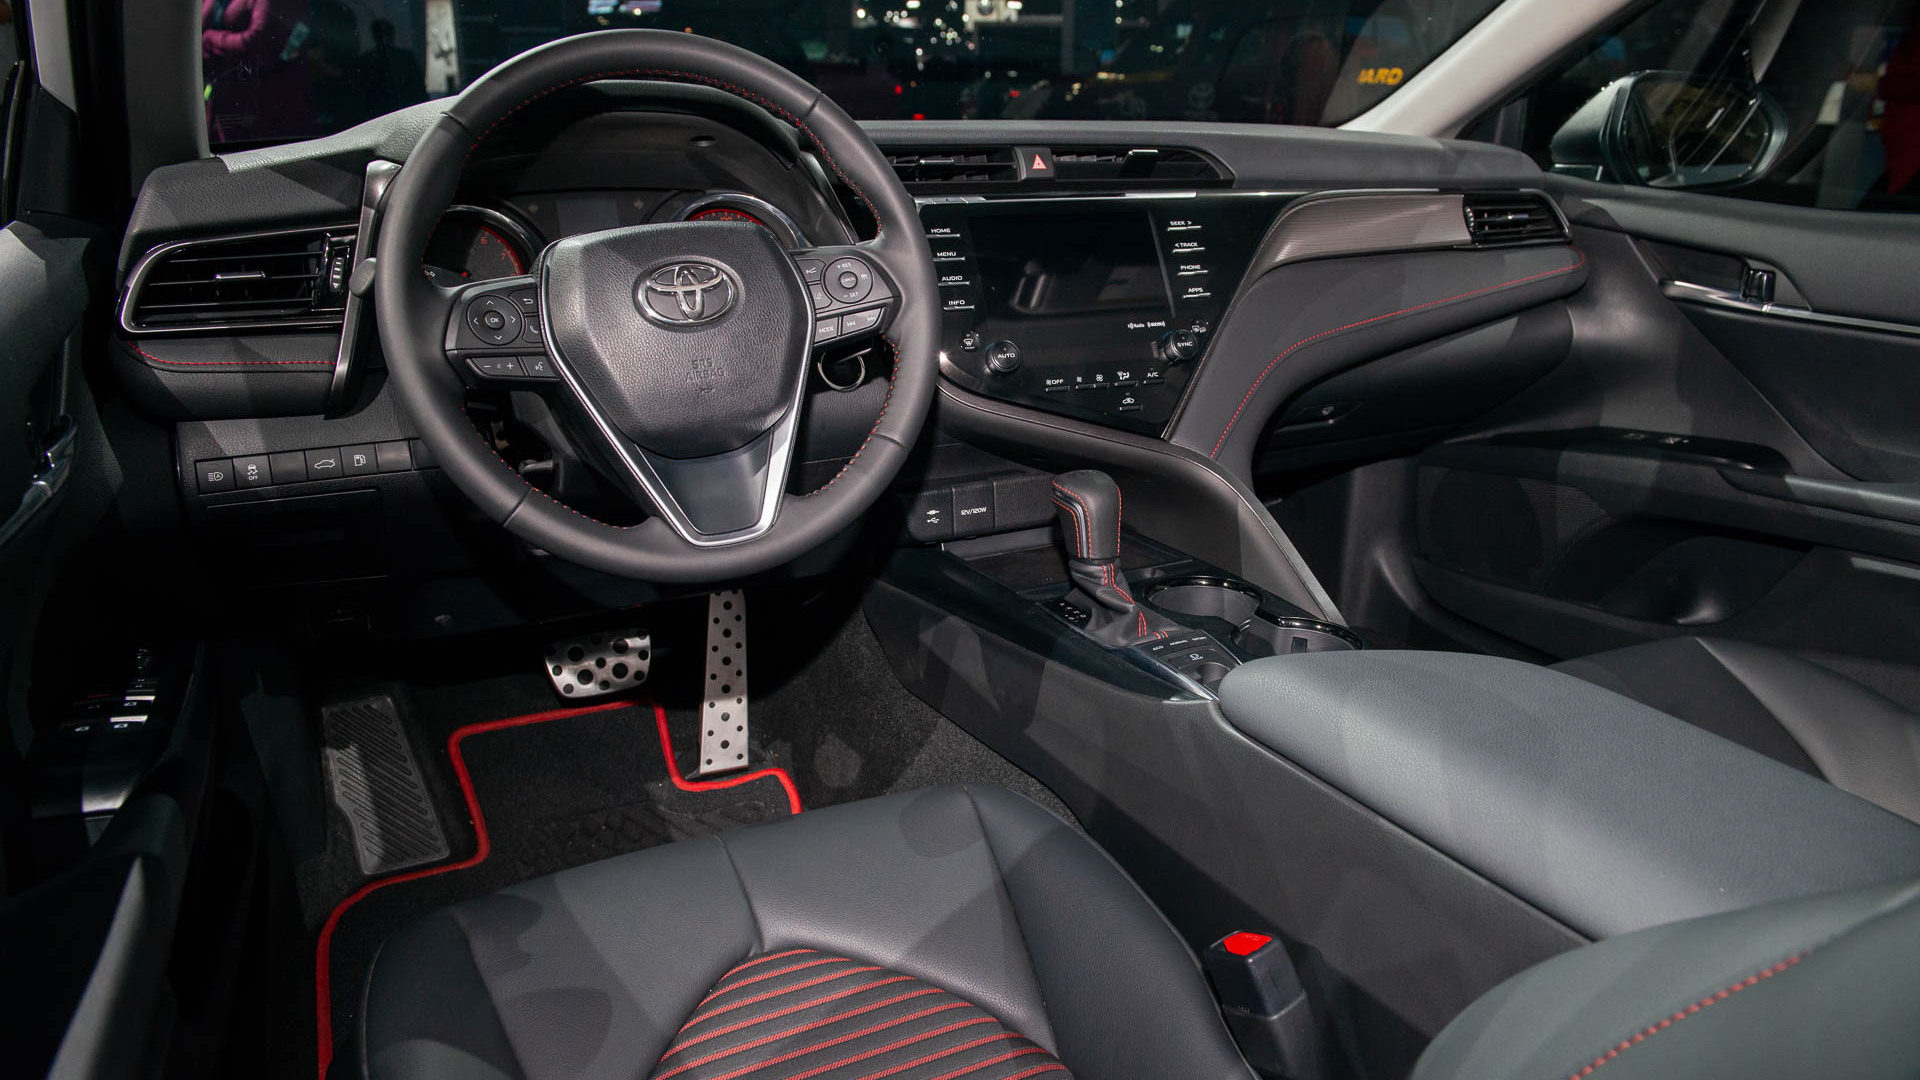 2020 Toyota Camry TRD priced from $31,995